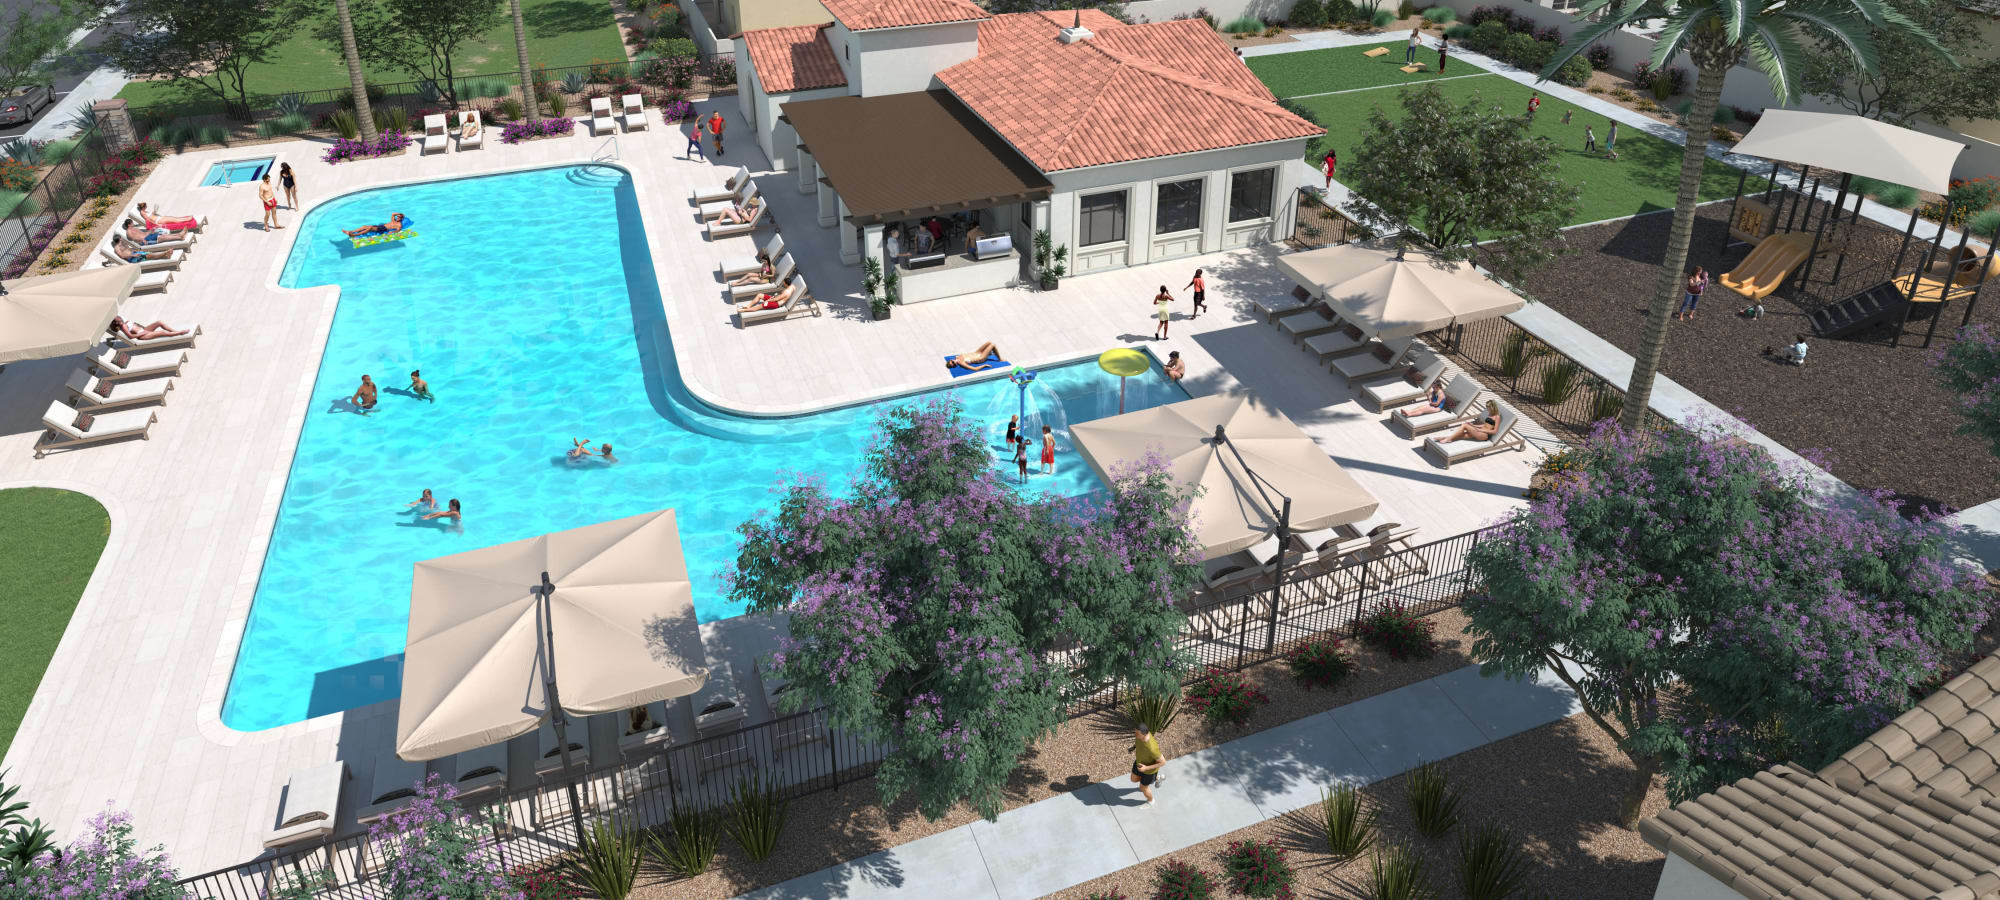 Pool Area at Las Casas at Windrose in Litchfield Park, Arizona